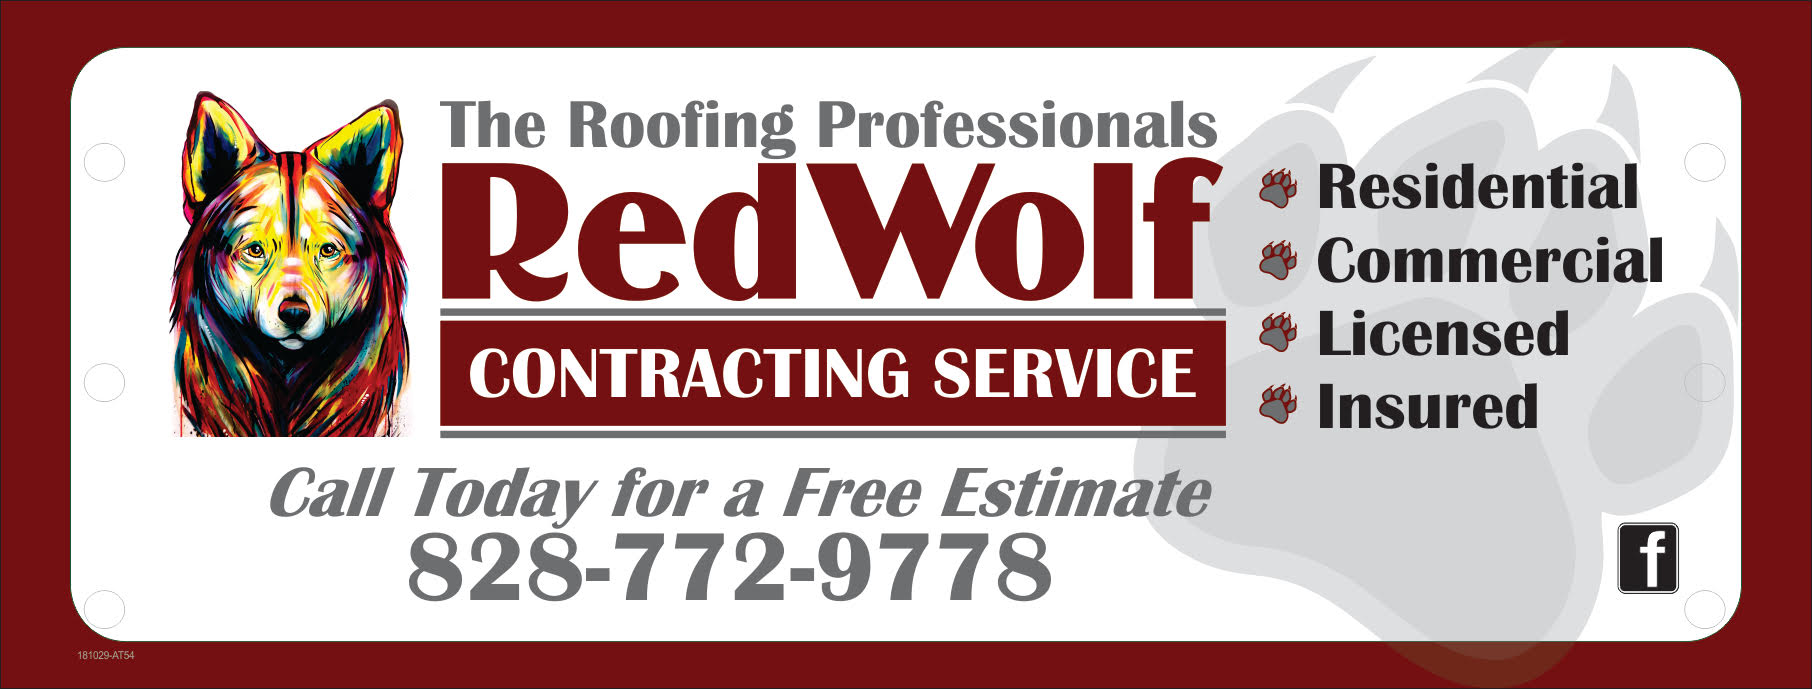 Need your roof repaired or replaced?  Call Matt with RedWolf Contracting Service to get your free estimate and evaluation today!  (828)772-9778 or visit their website  nc-roofers.com